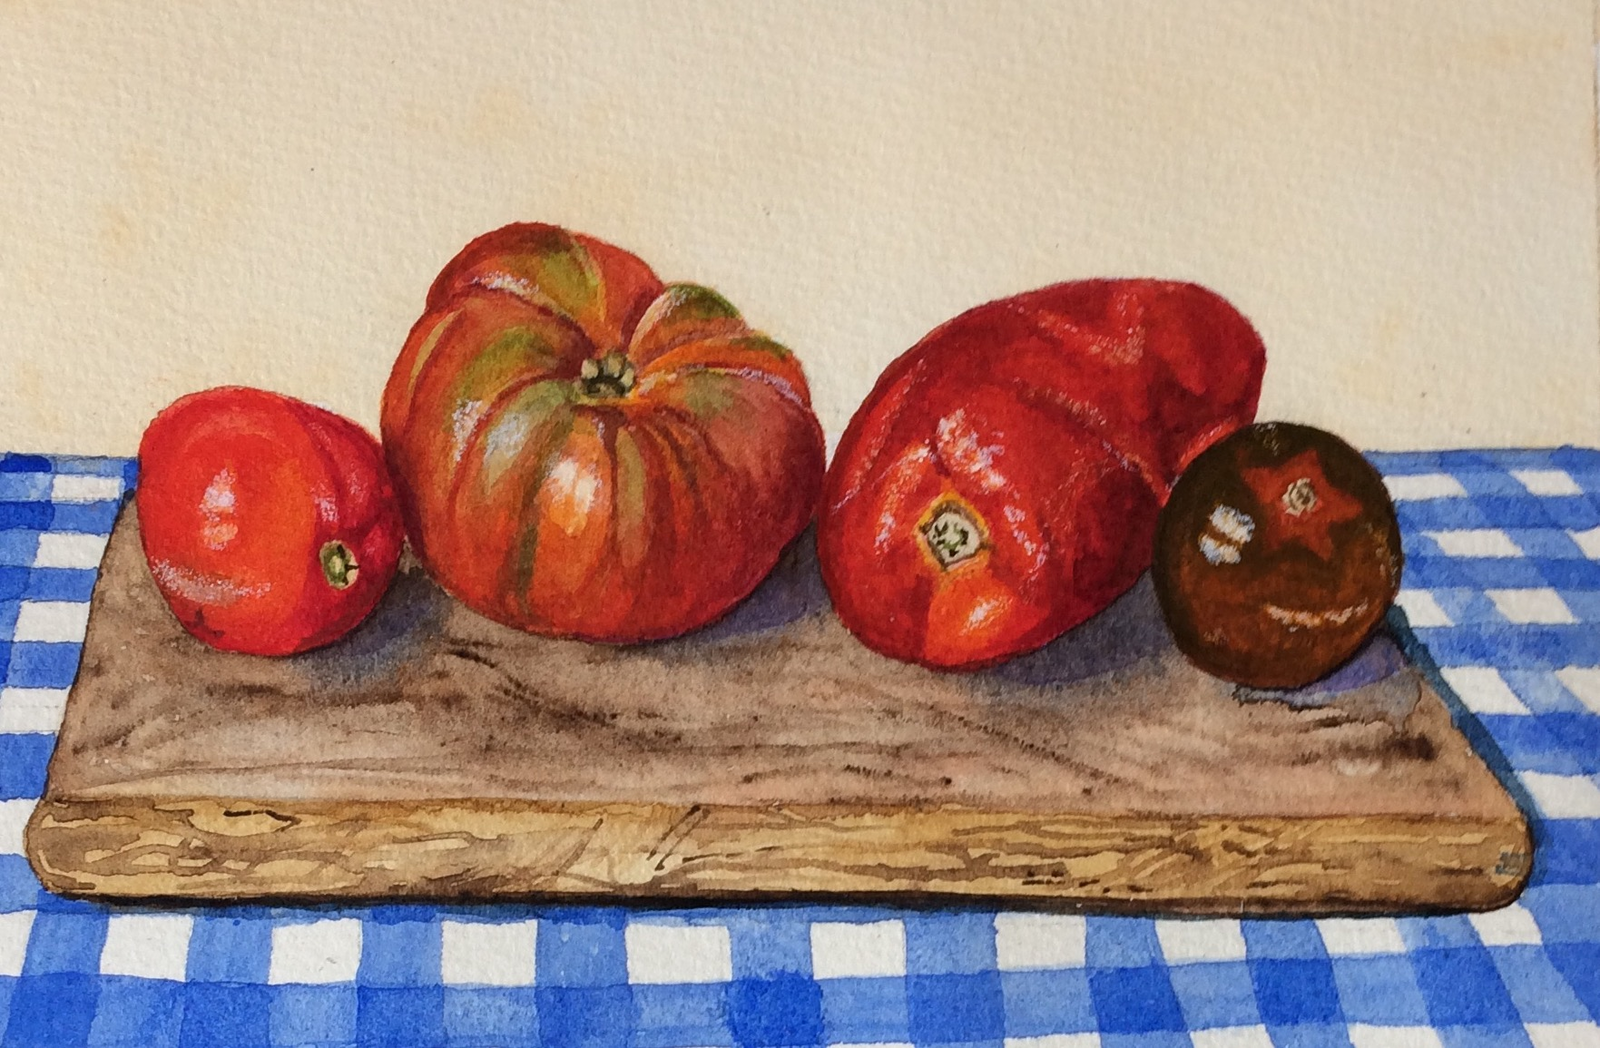 Tomatoes - sold